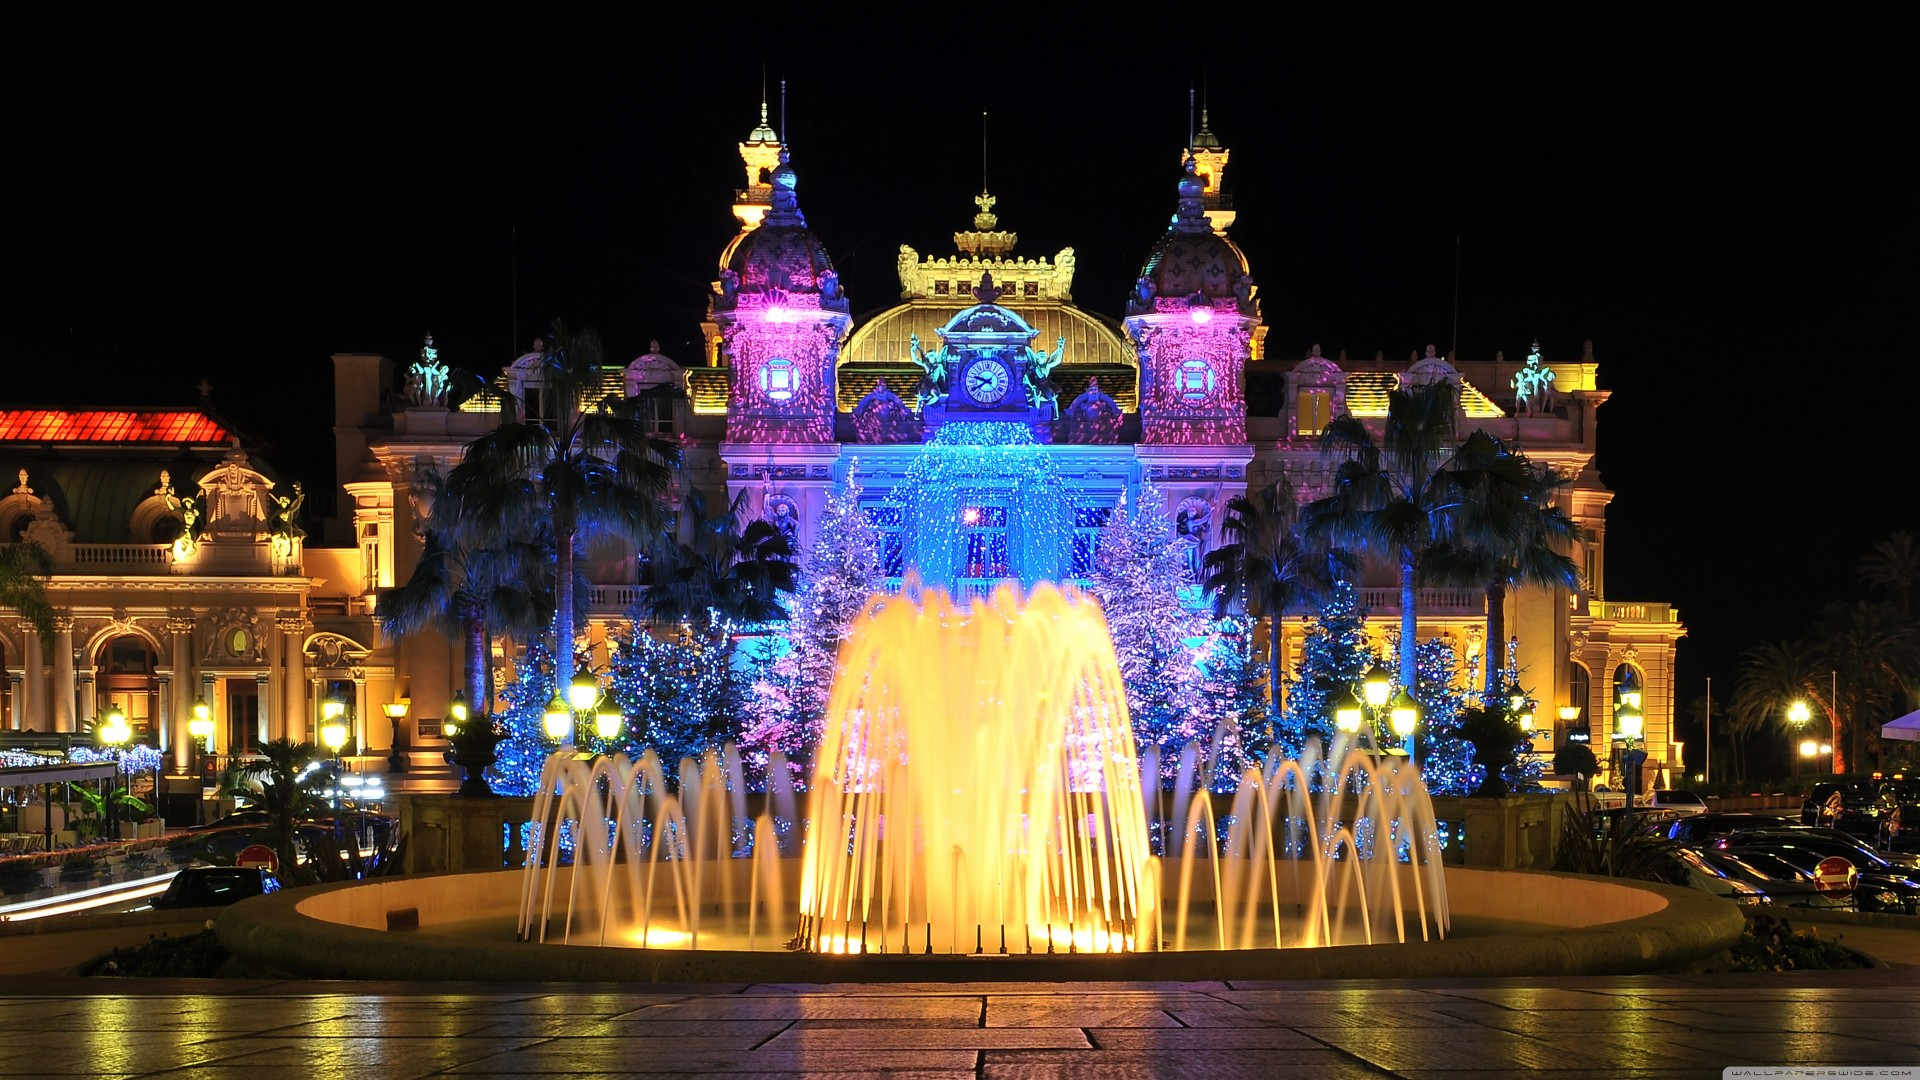 monte_carlo_casino-wallpaper-3840x2160-1920x1080